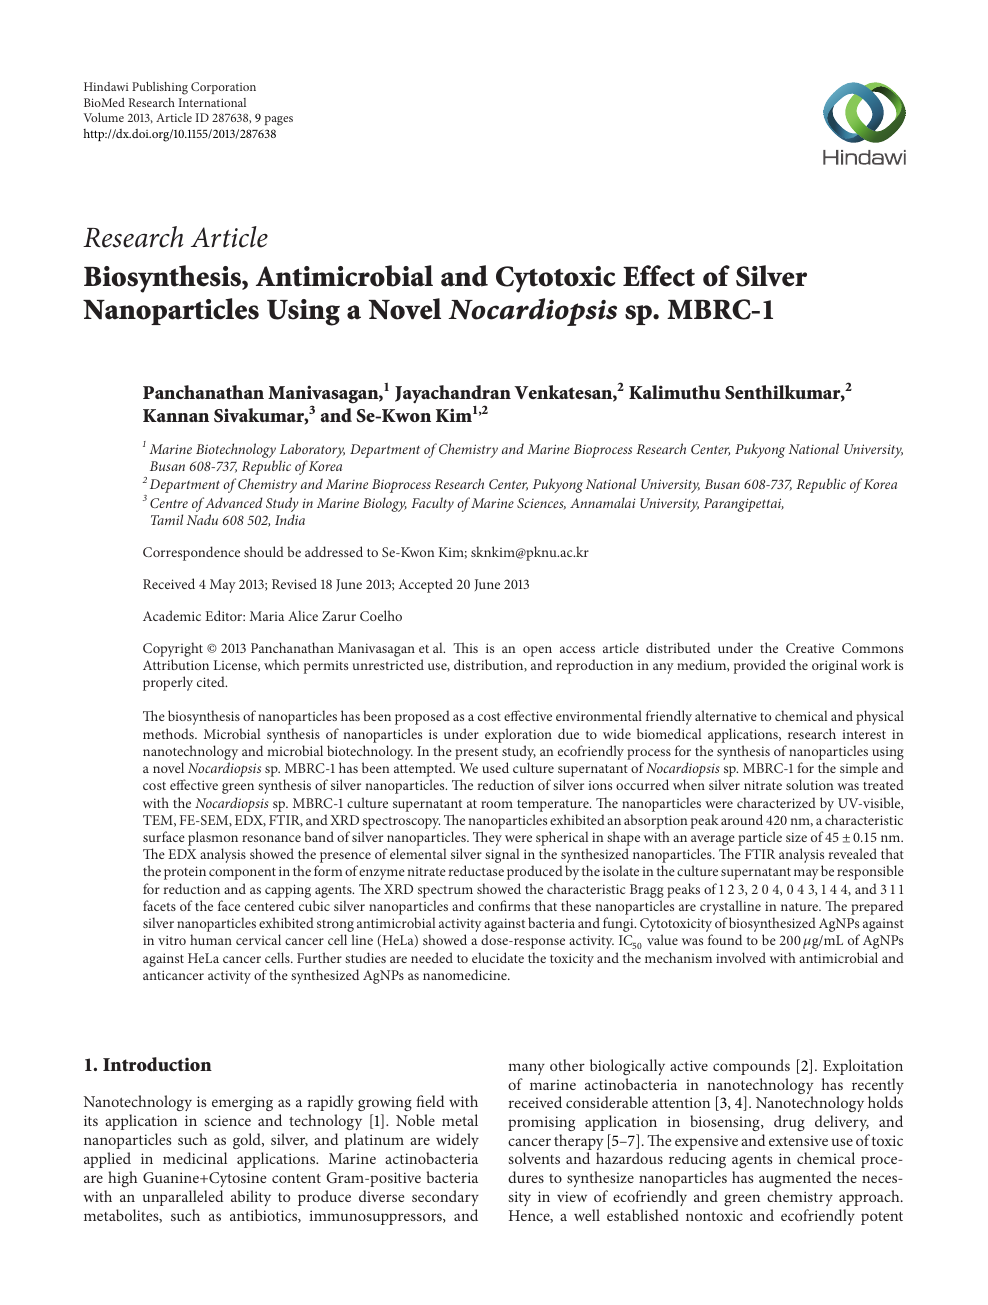 Biosynthesis, Antimicrobial and Cytotoxic Effect of Silver